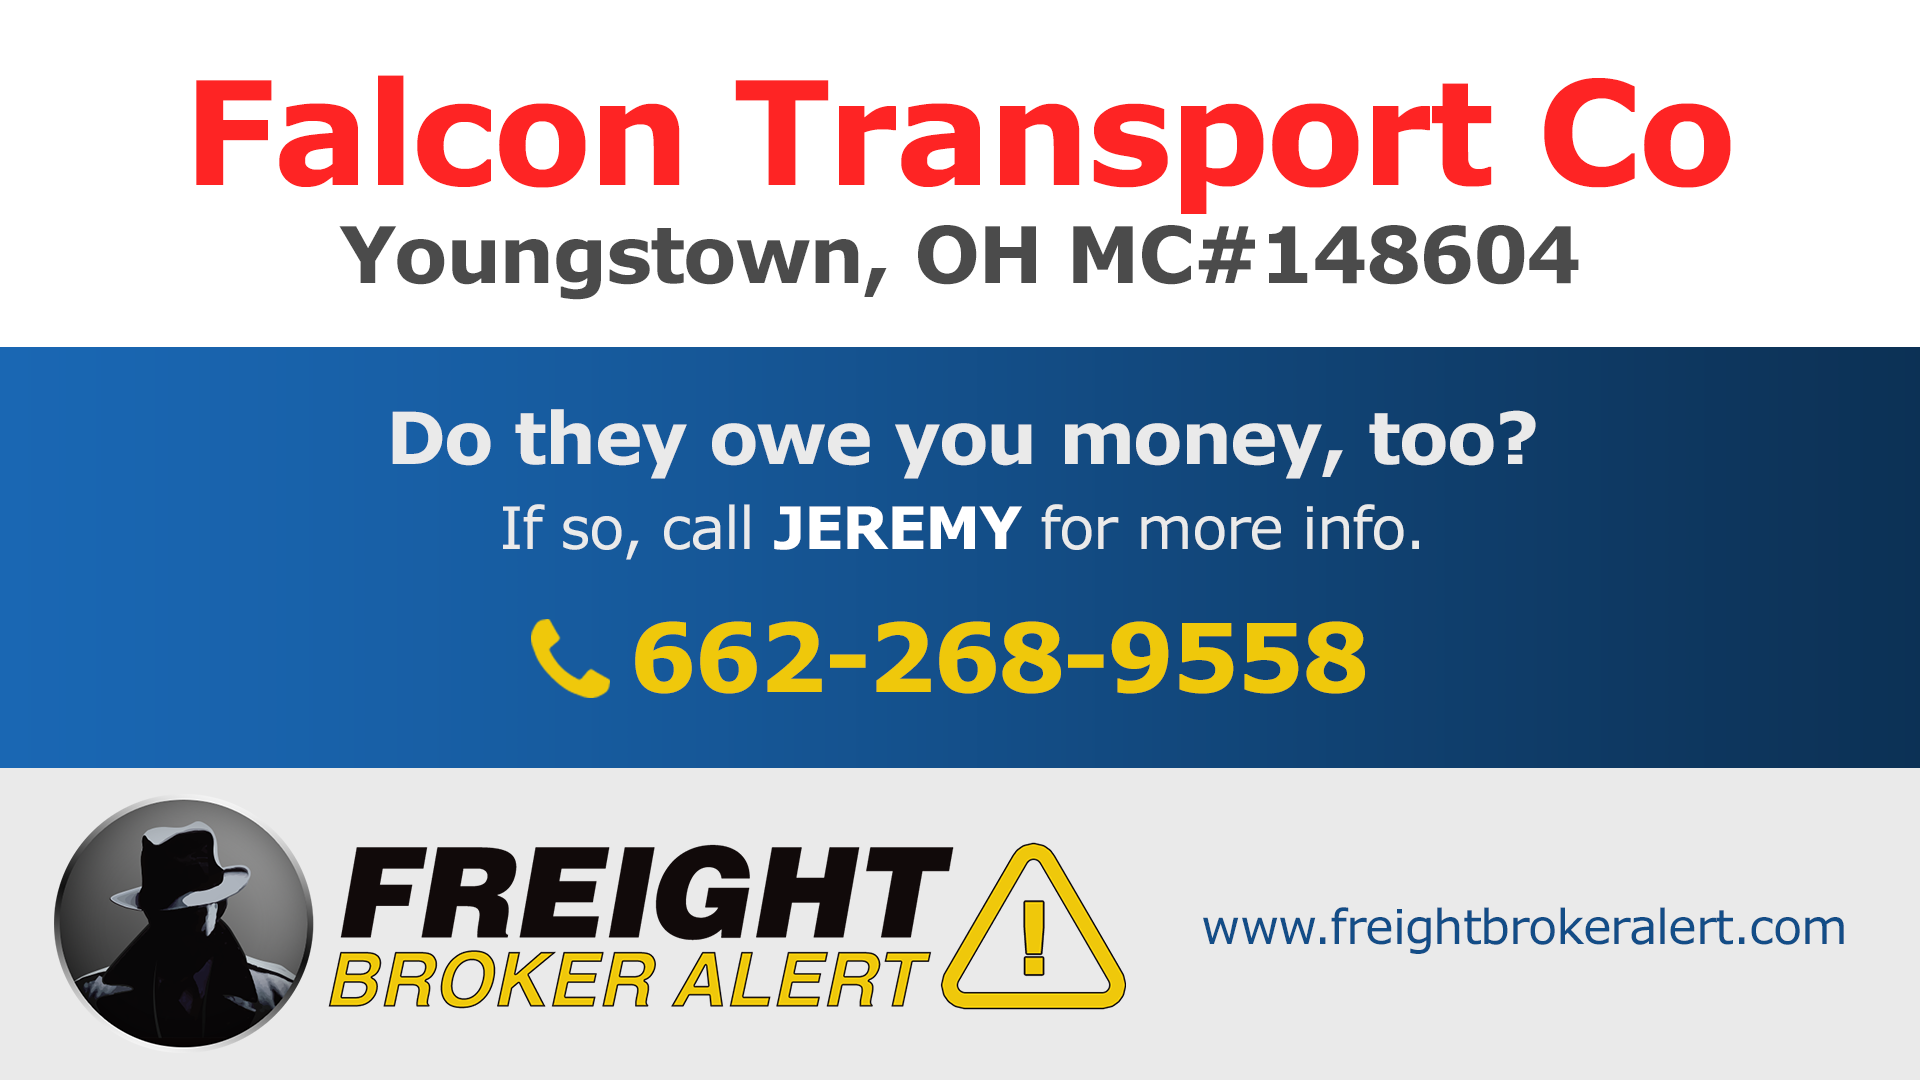 Falcon Transport Co Ohio